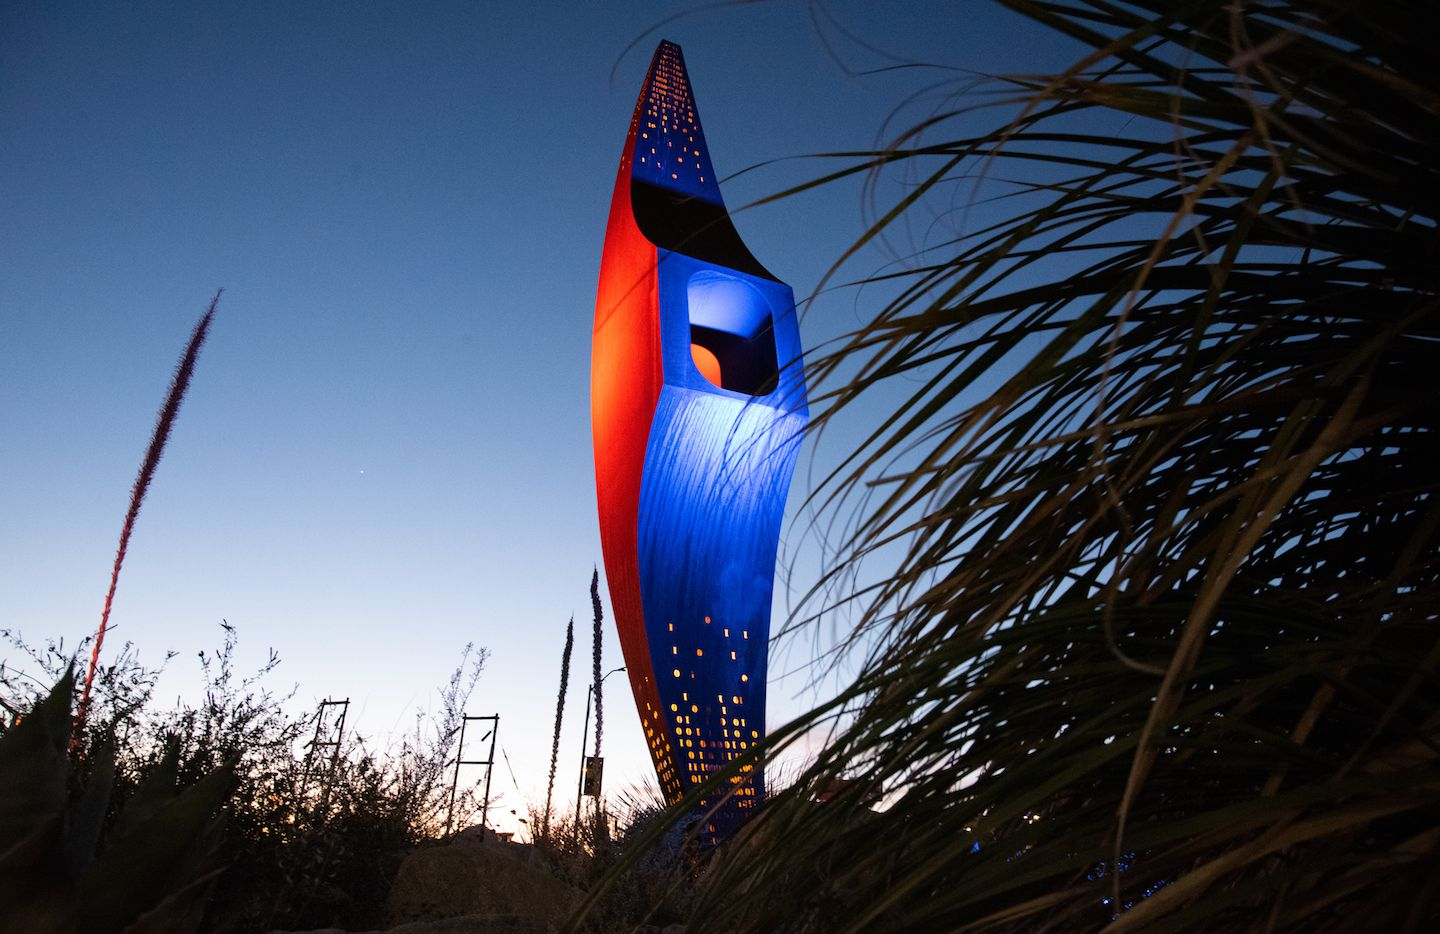 "In a move to commemorate the class of 2020 and celebrate education, the University of Texas at El Paso lit the ""Mining Minds"" pick axe sculpture blue and orange."